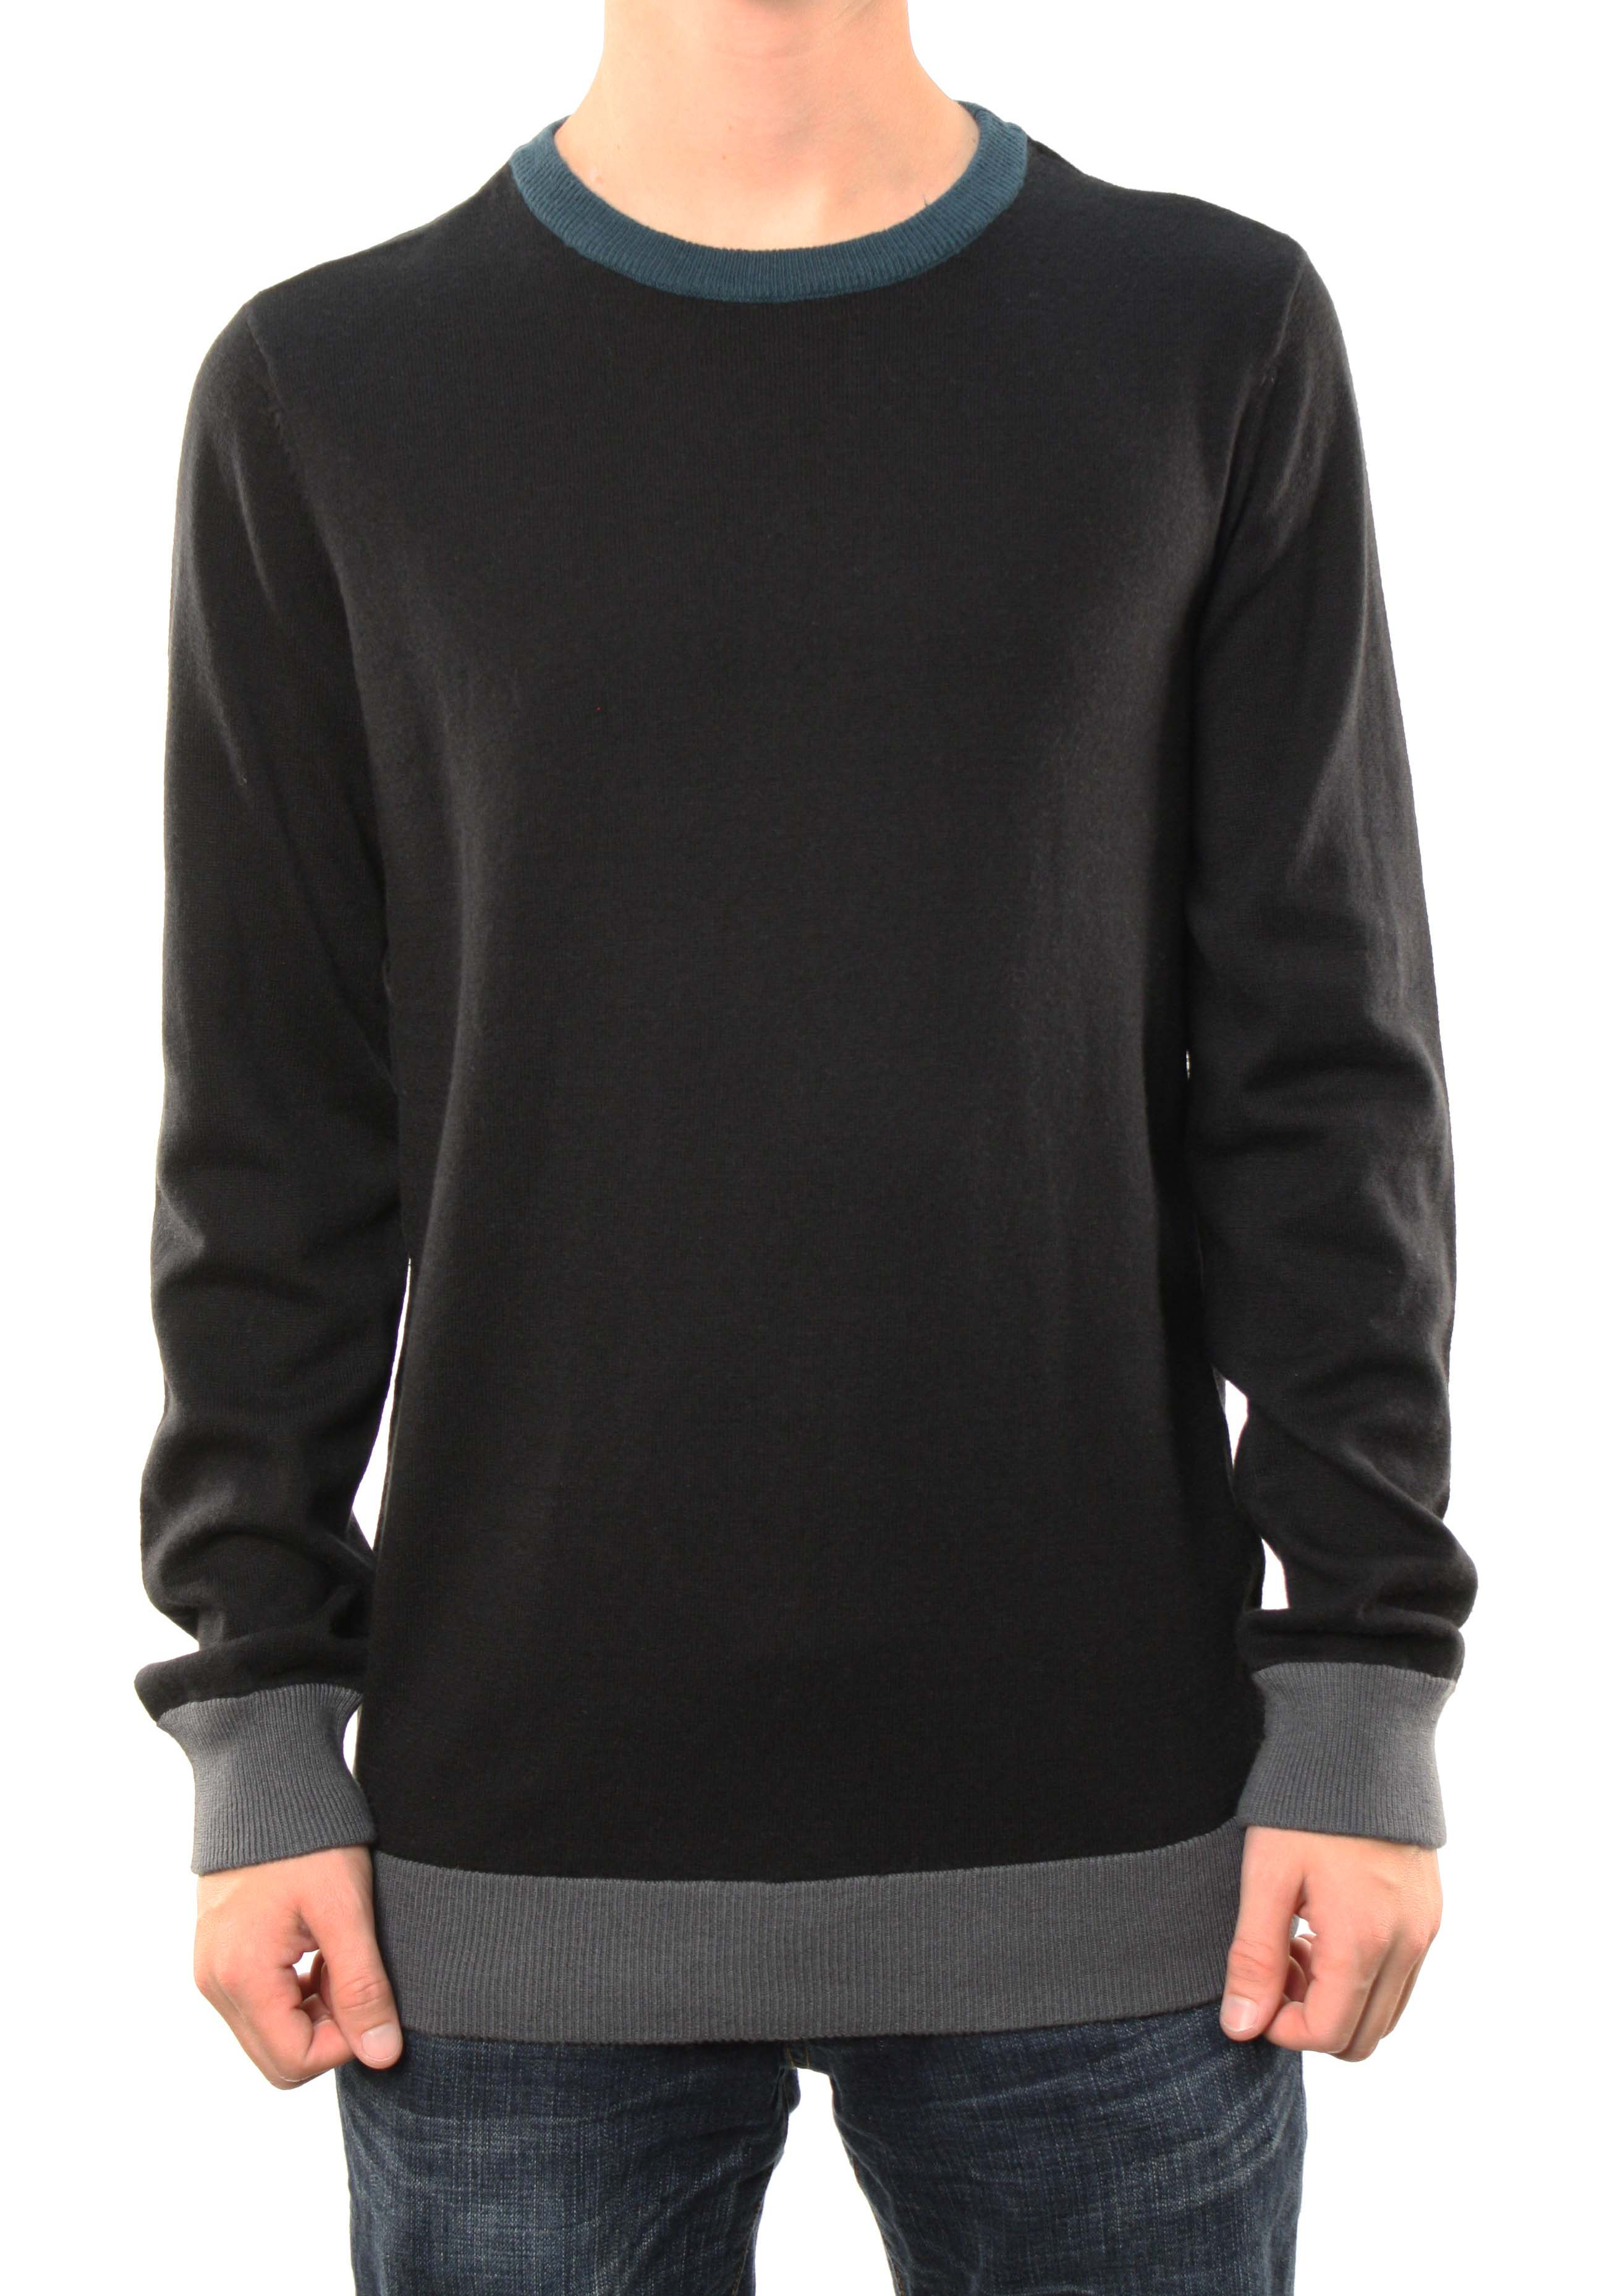 Quiksilver Men's Premium Knox Pullover Sweater Shirt Black 107706-BLK at Sears.com